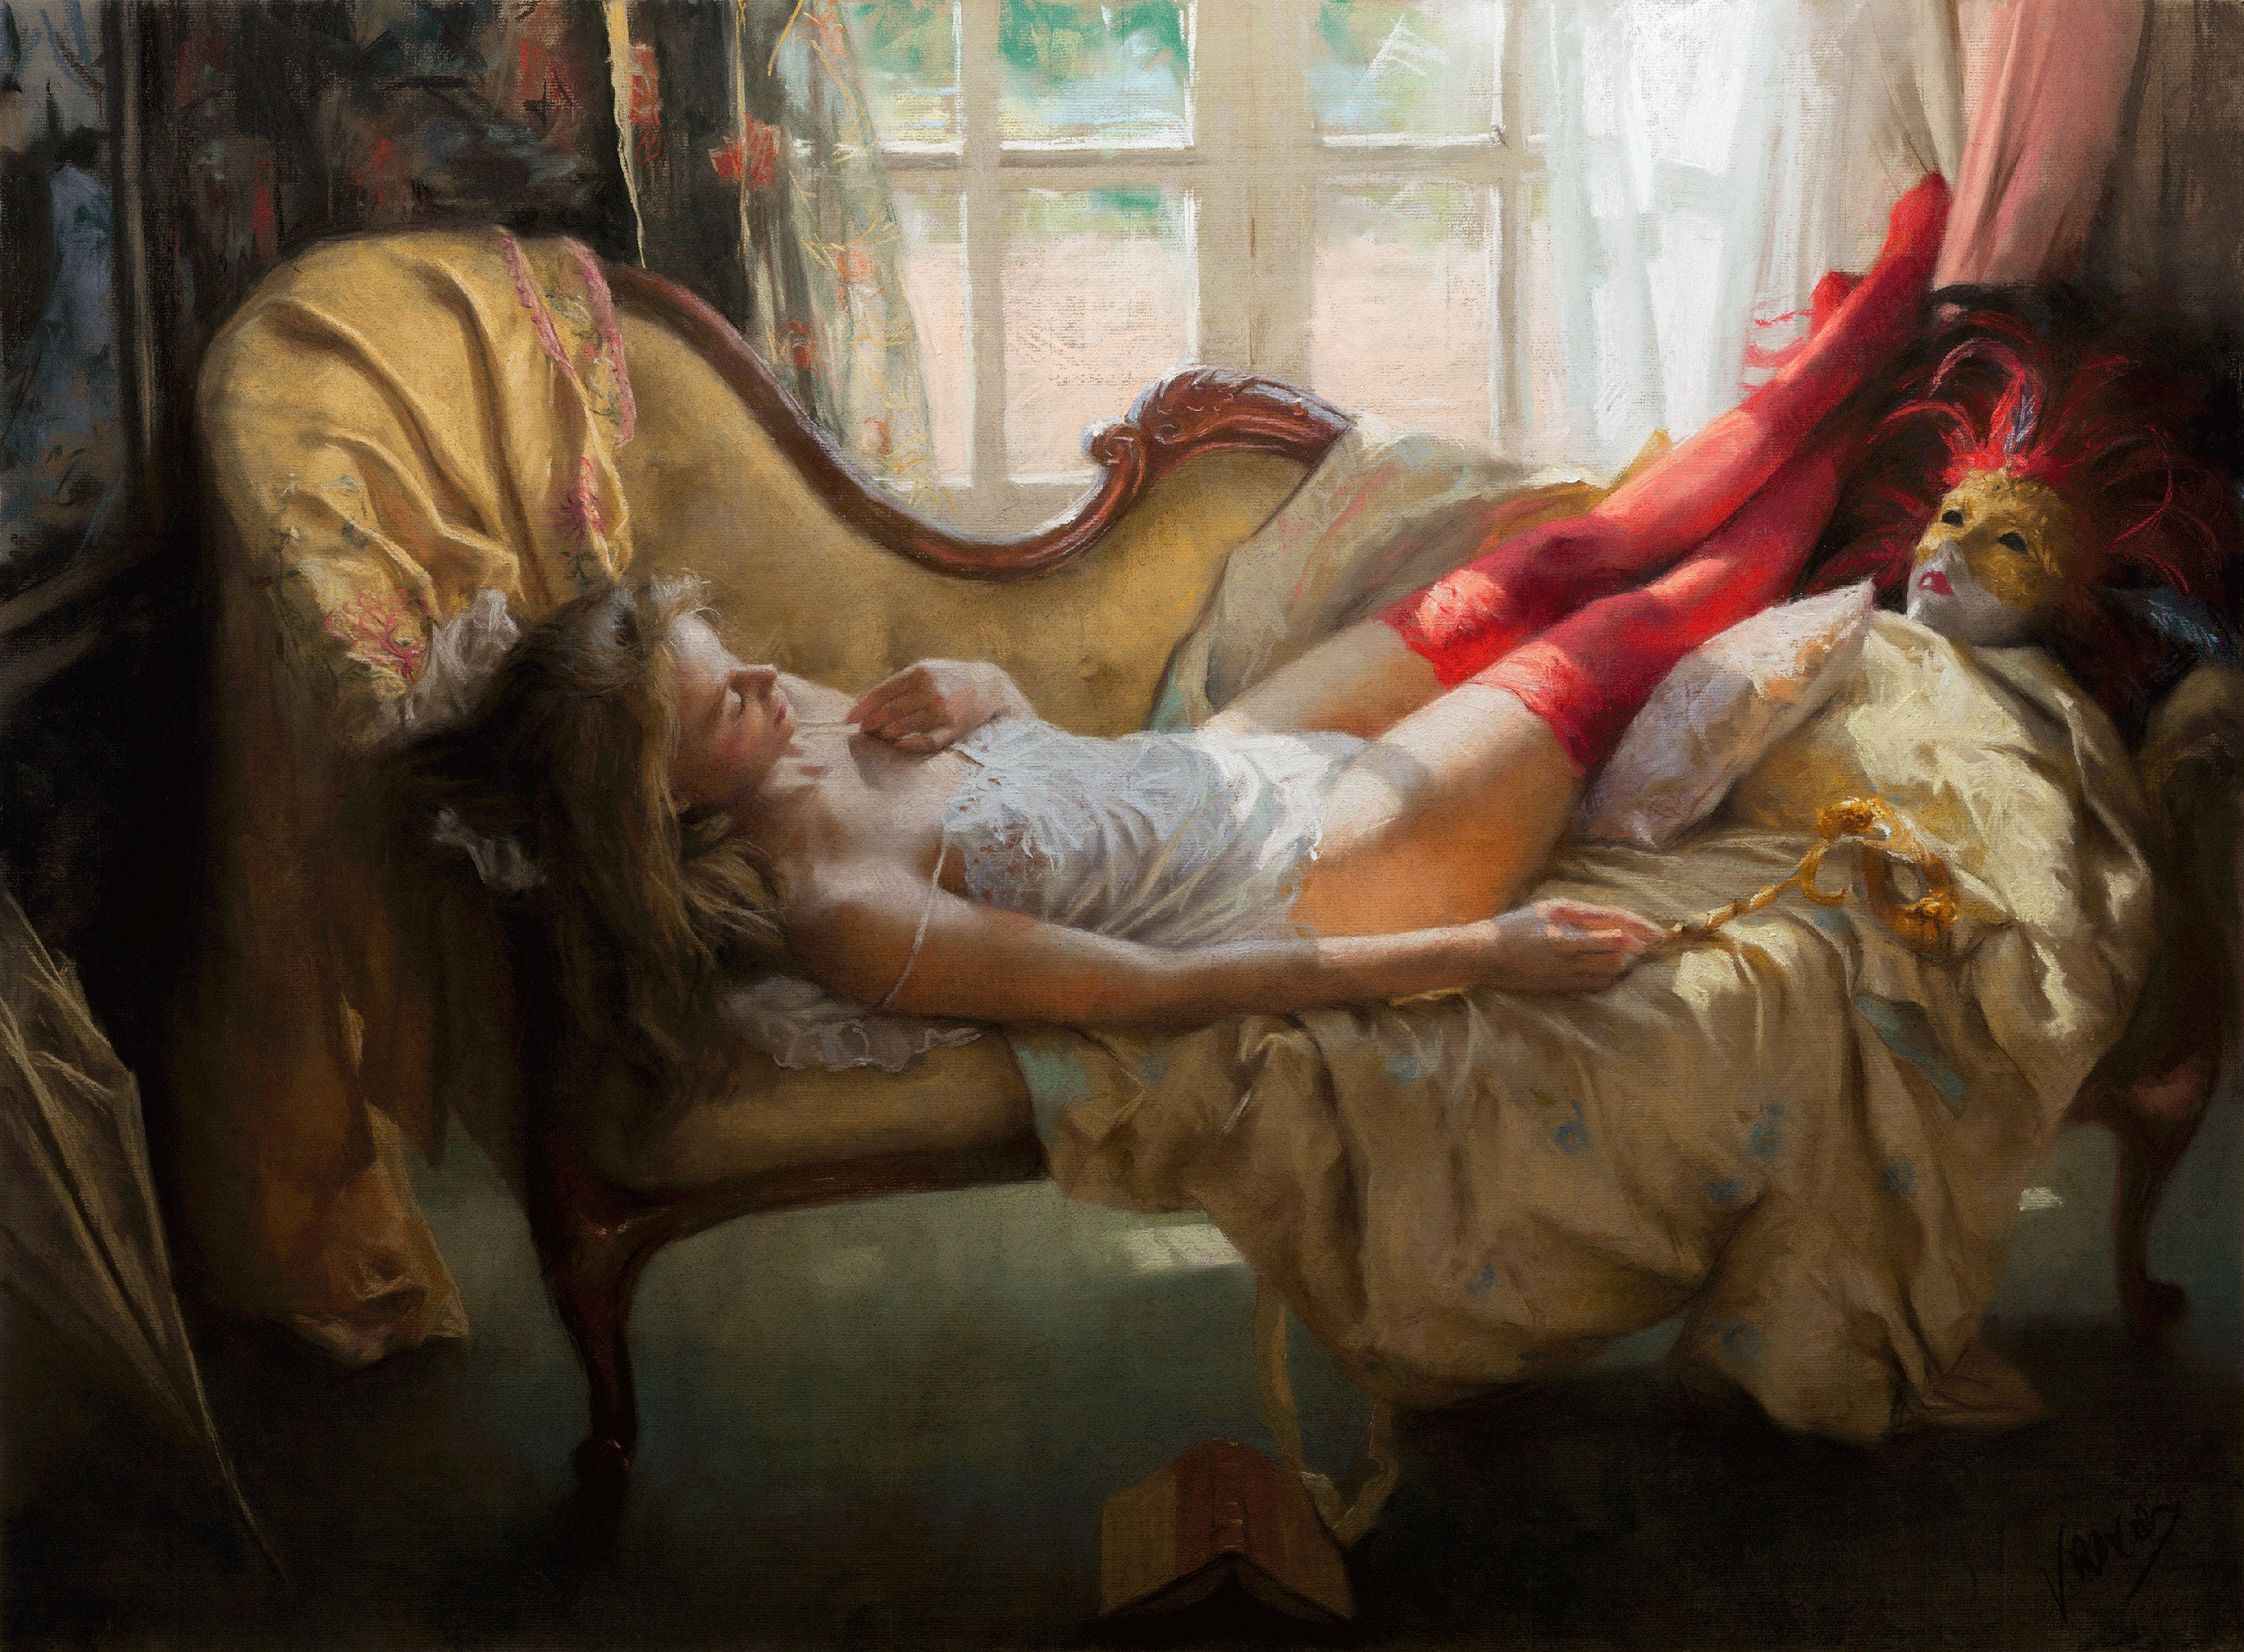 This figurative artwork is a limited edition print of a pastel painting by Vicente Romero.